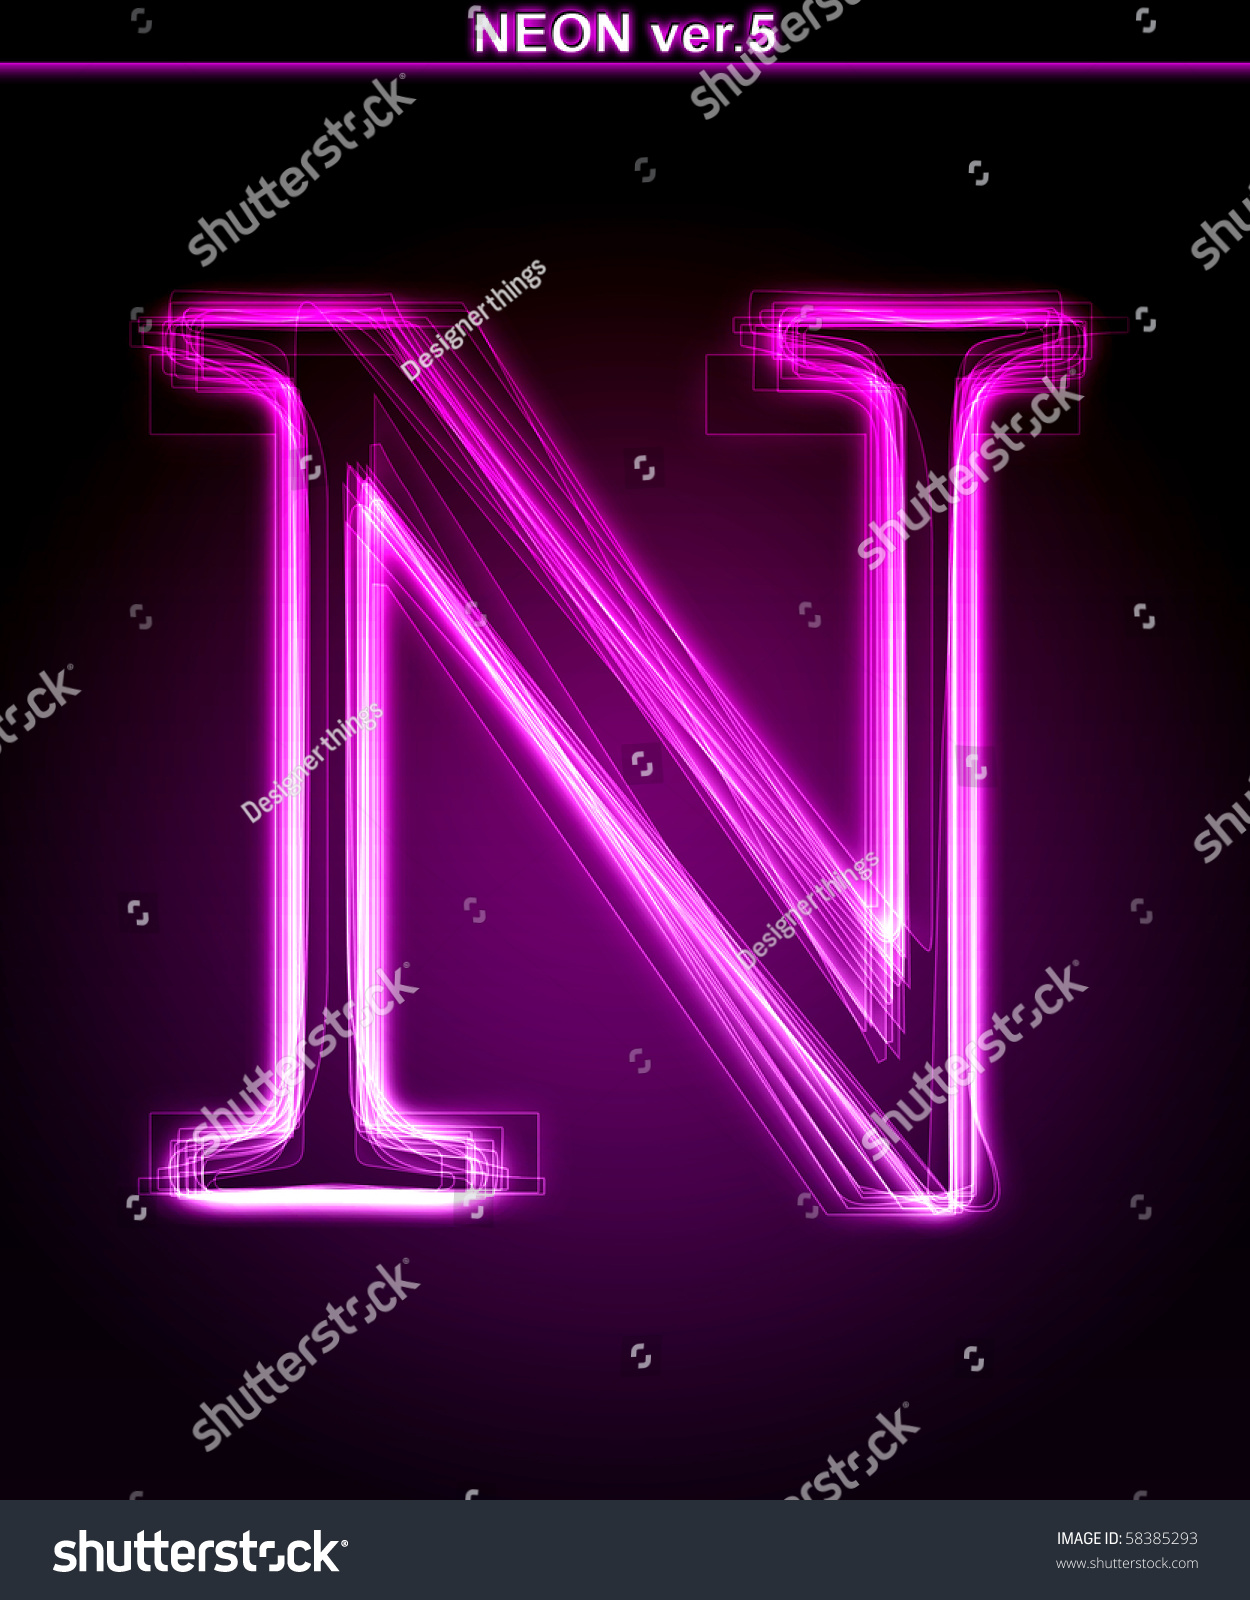 Glowing Neon Letter On Black Background Stock Illustration ...